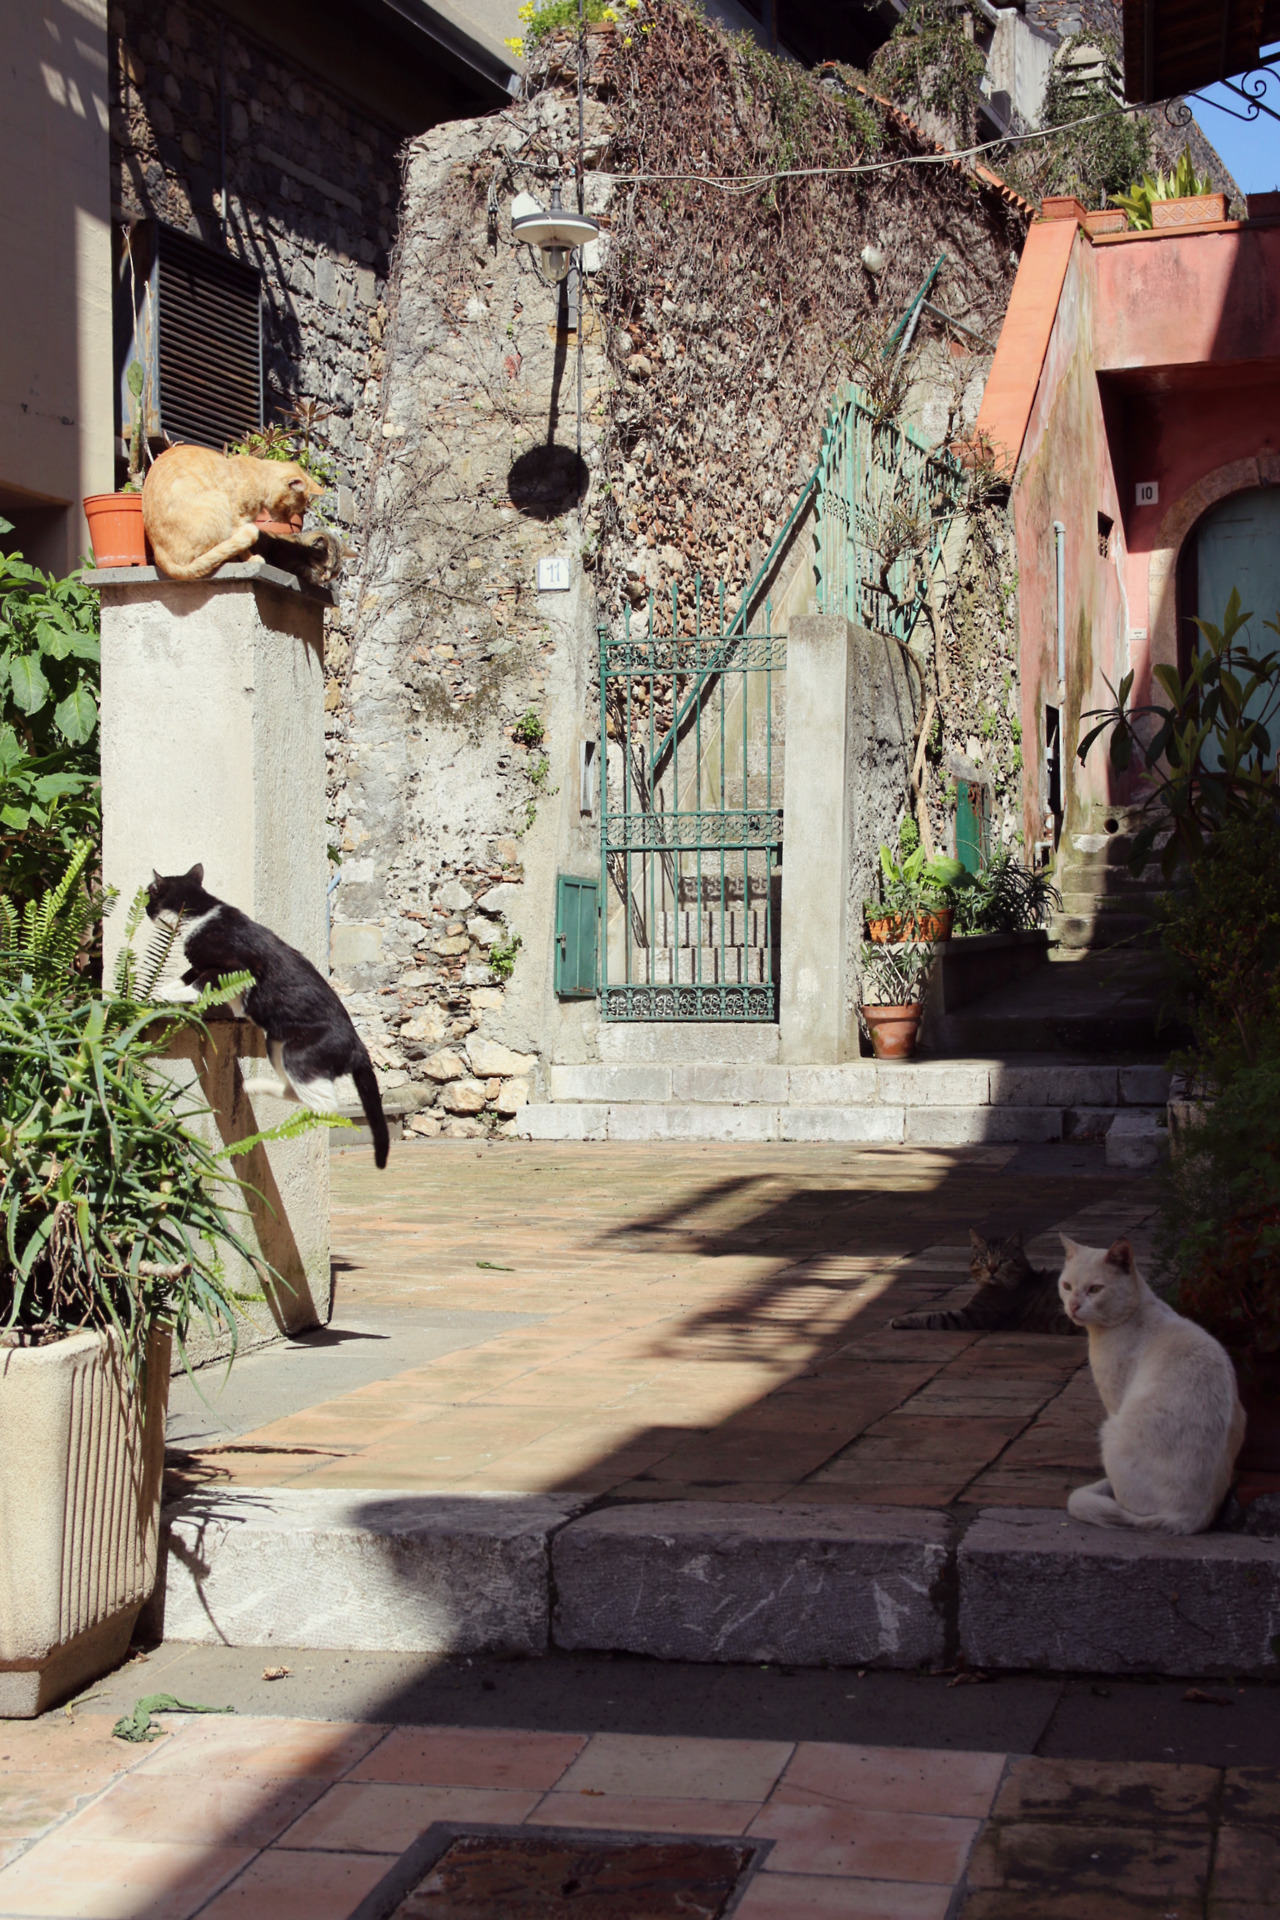 Cats in the sun... what's not to love?